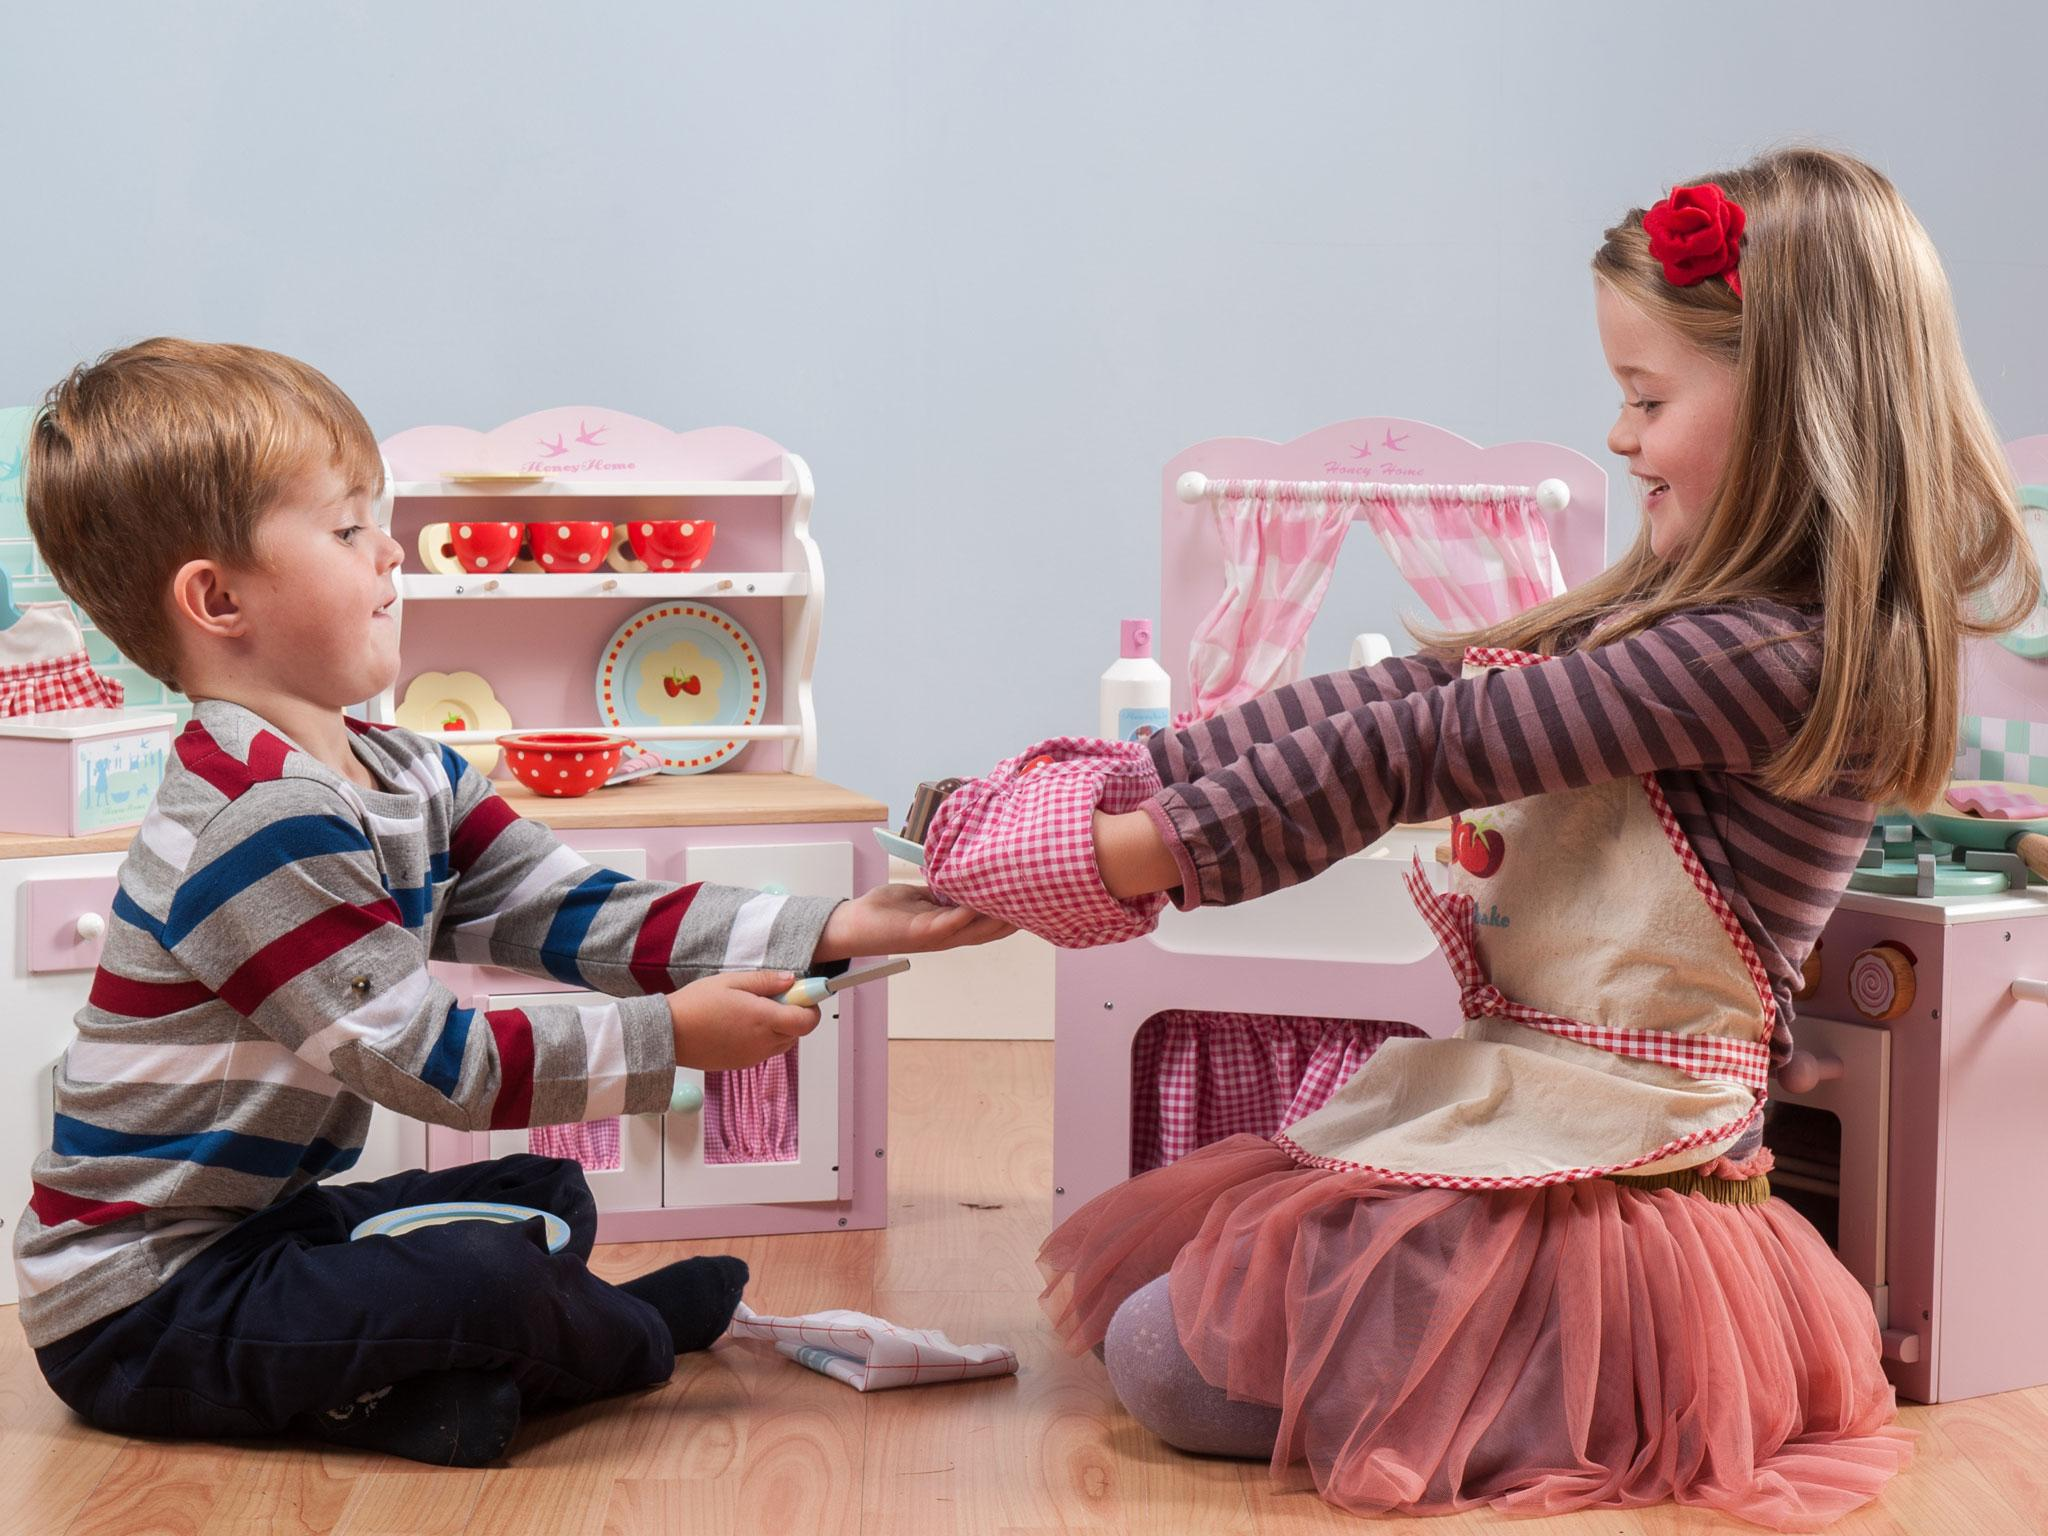 How To Choose The Best Toys For 4 Year Old Boys – The Blog Below